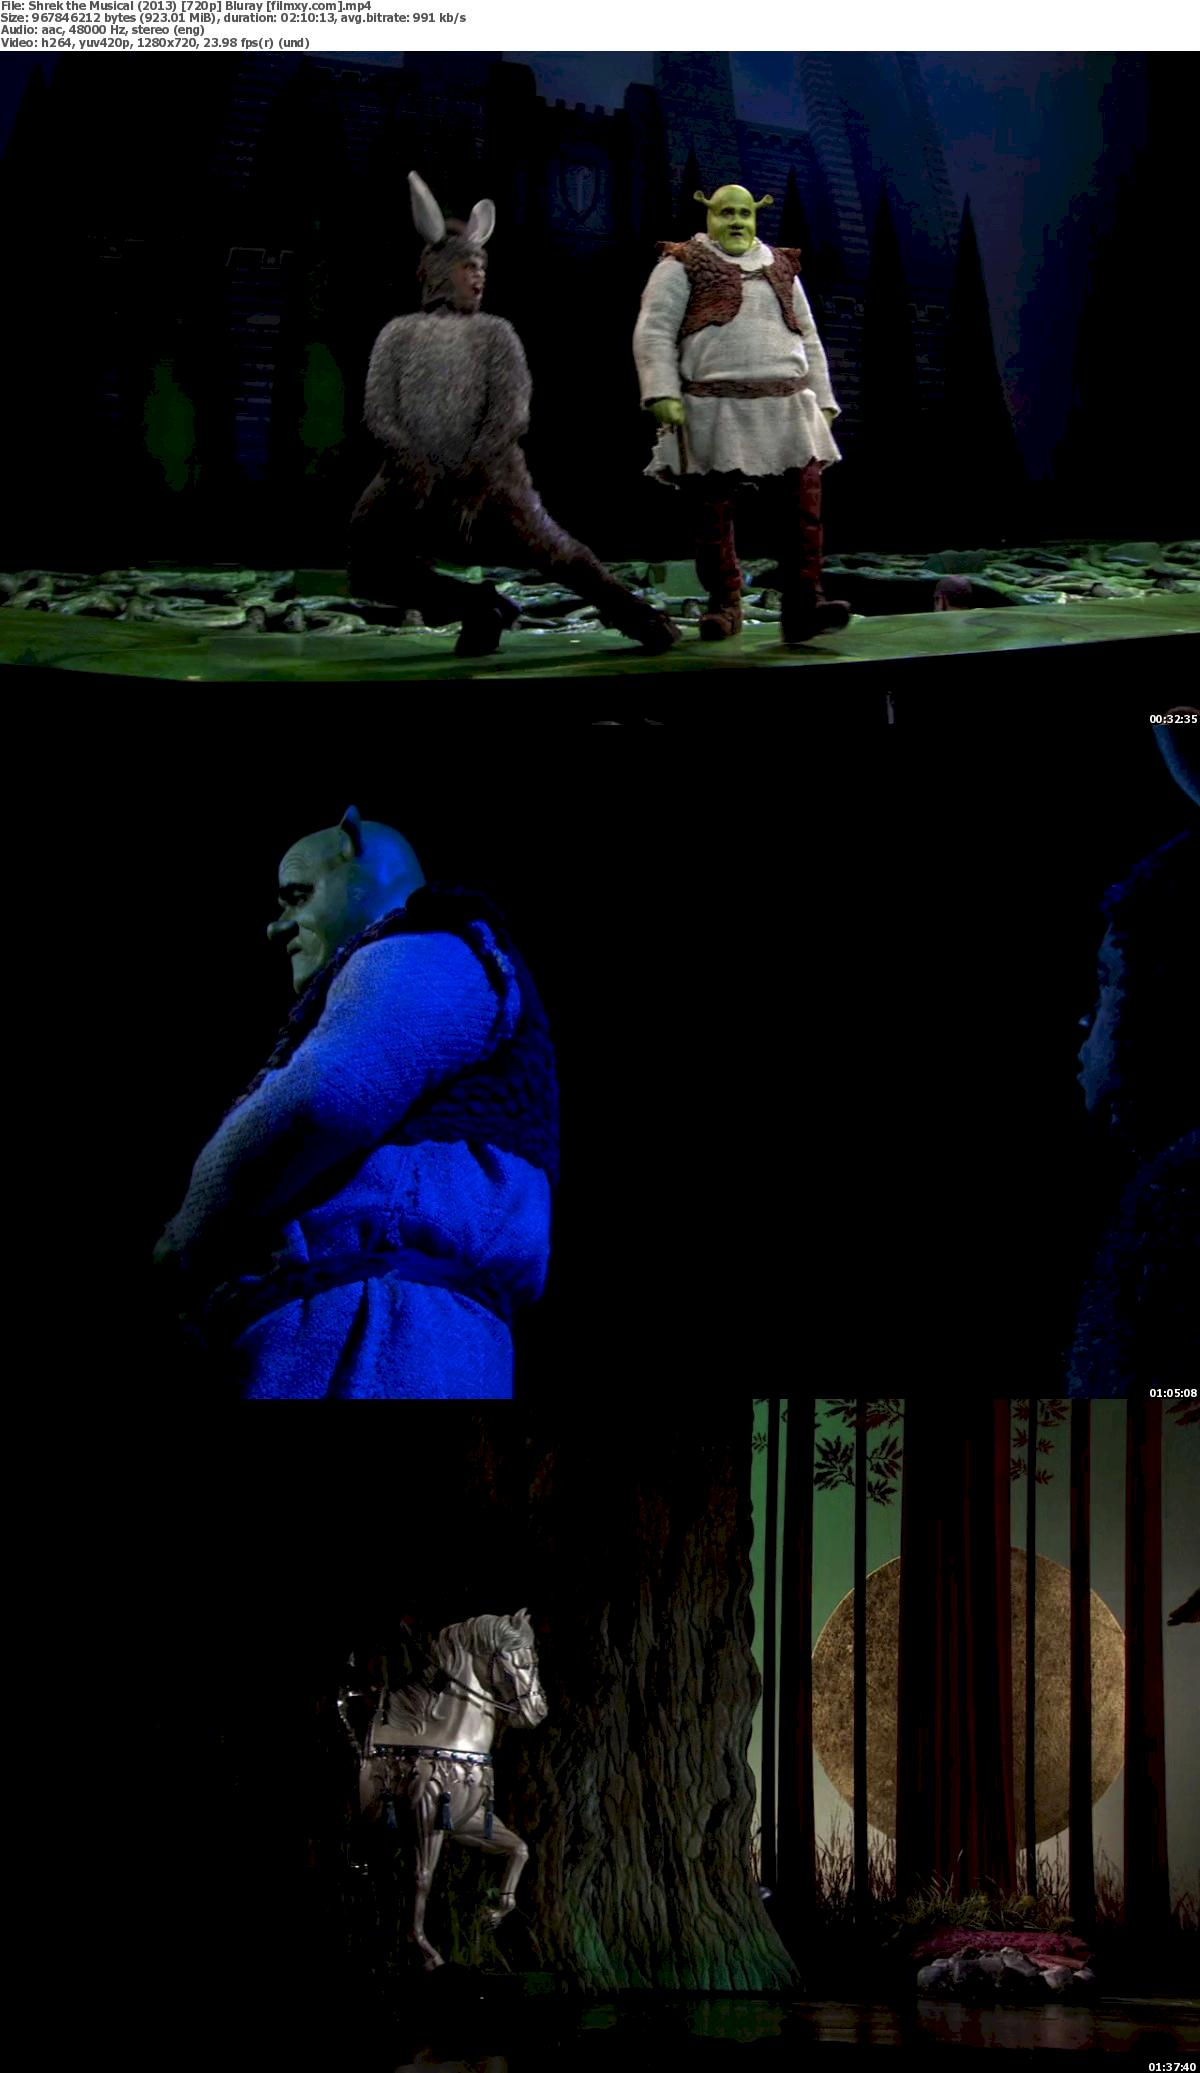 Shrek the Musical (2013) 720p & 1080p Bluray Free Download 720p Screenshot